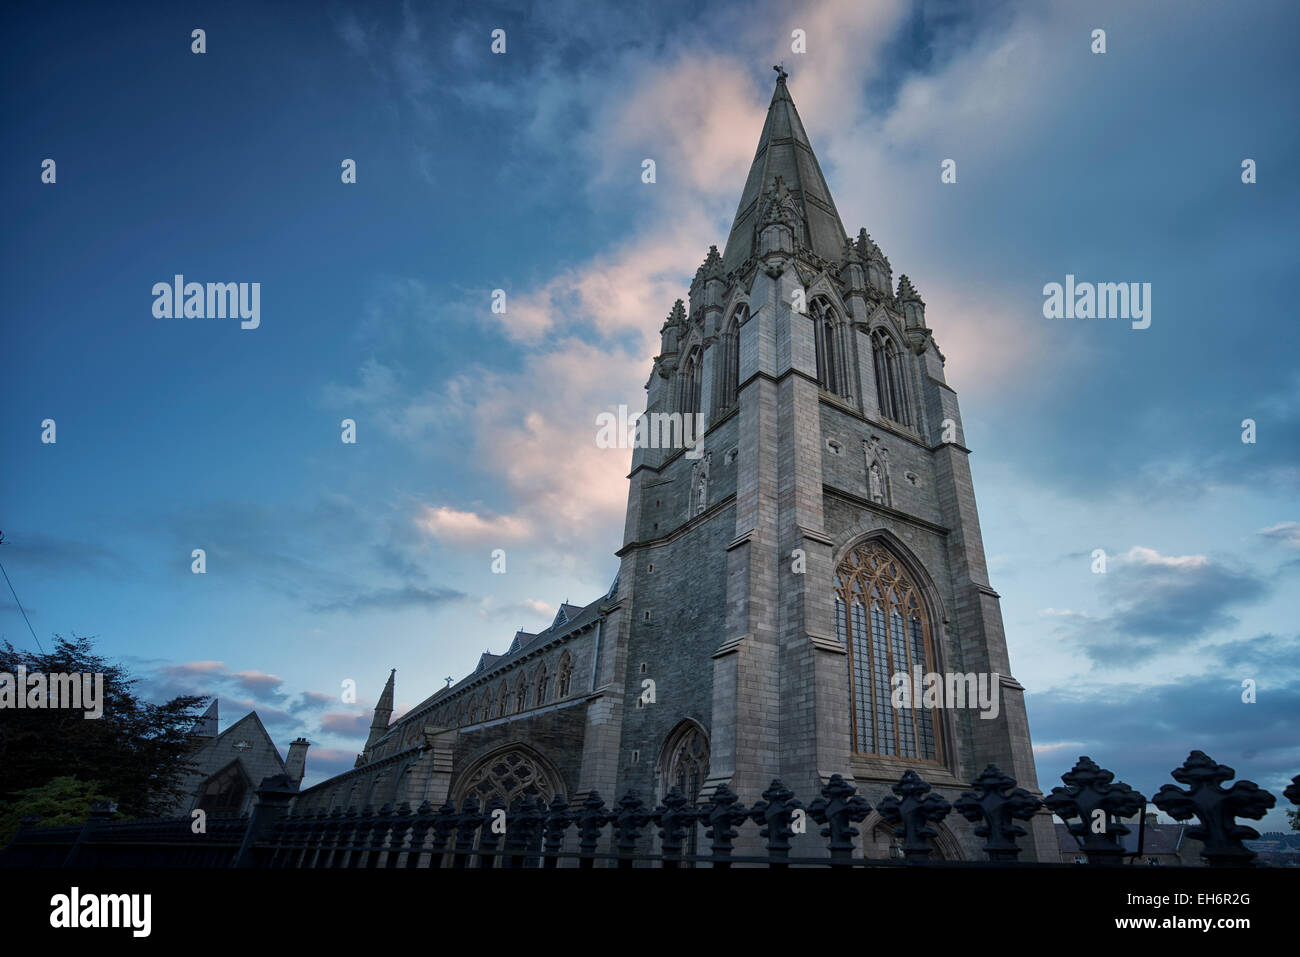 St. Eugen's Cathedral. Derry, Northern Ireland - Stock Image